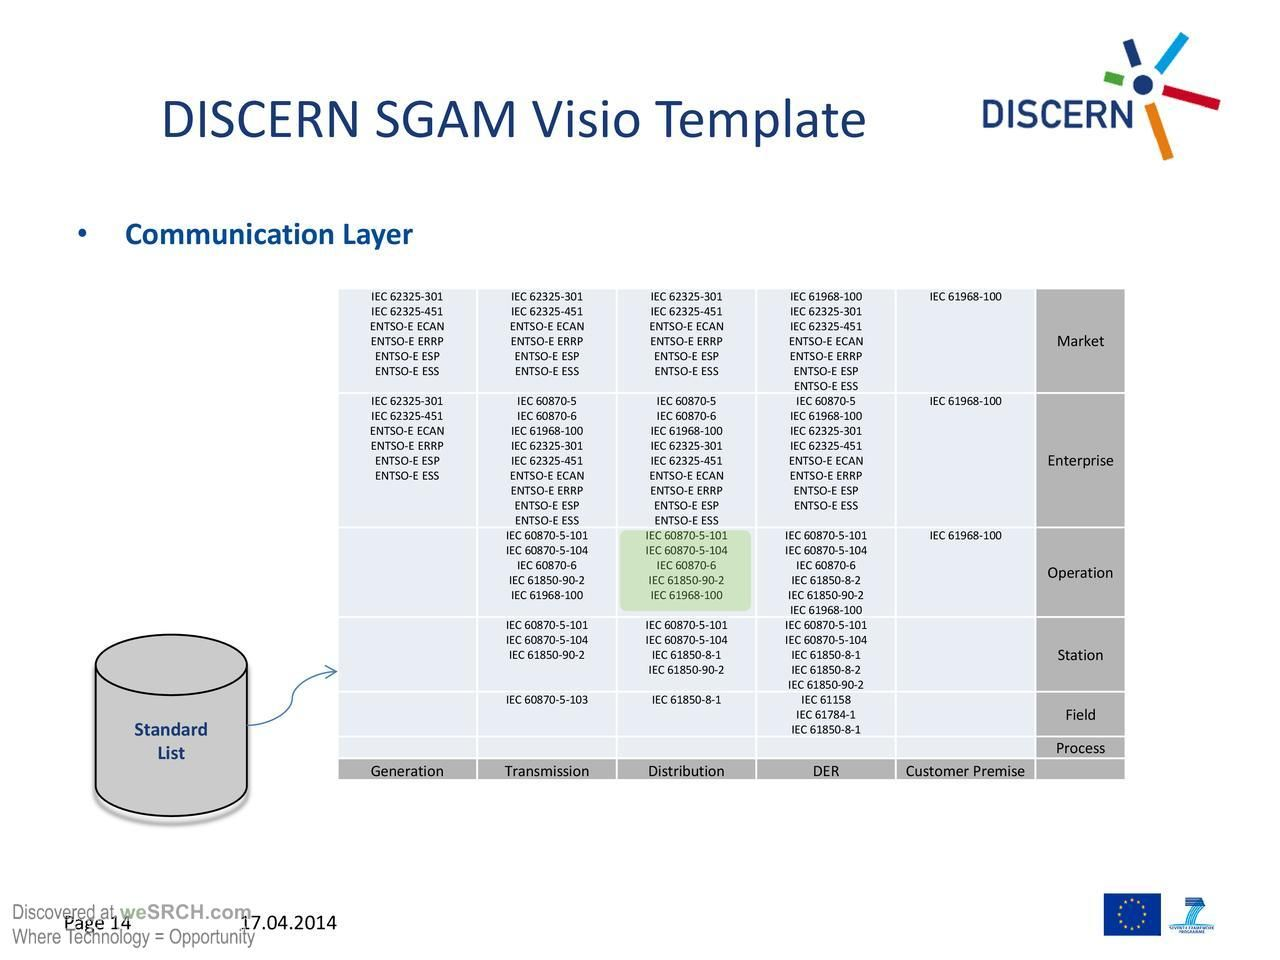 Smart Grid Architecture Model - Mapping DISCERN Sub